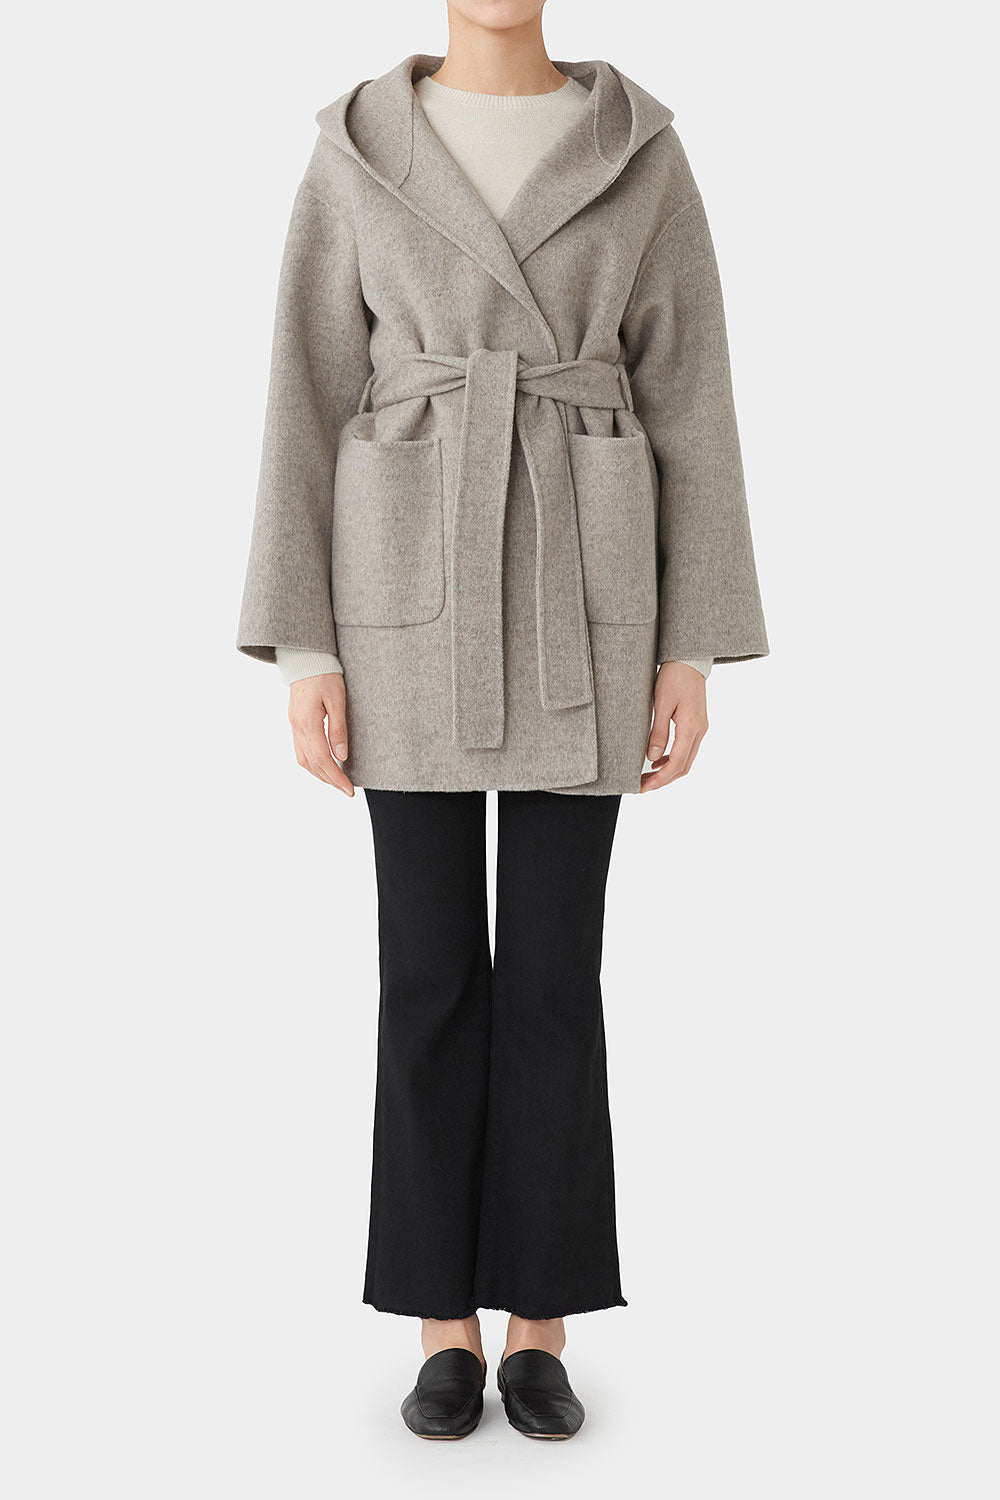 HERRINGBONE NADINE DOUBLE FACED WOOL HOOD COAT